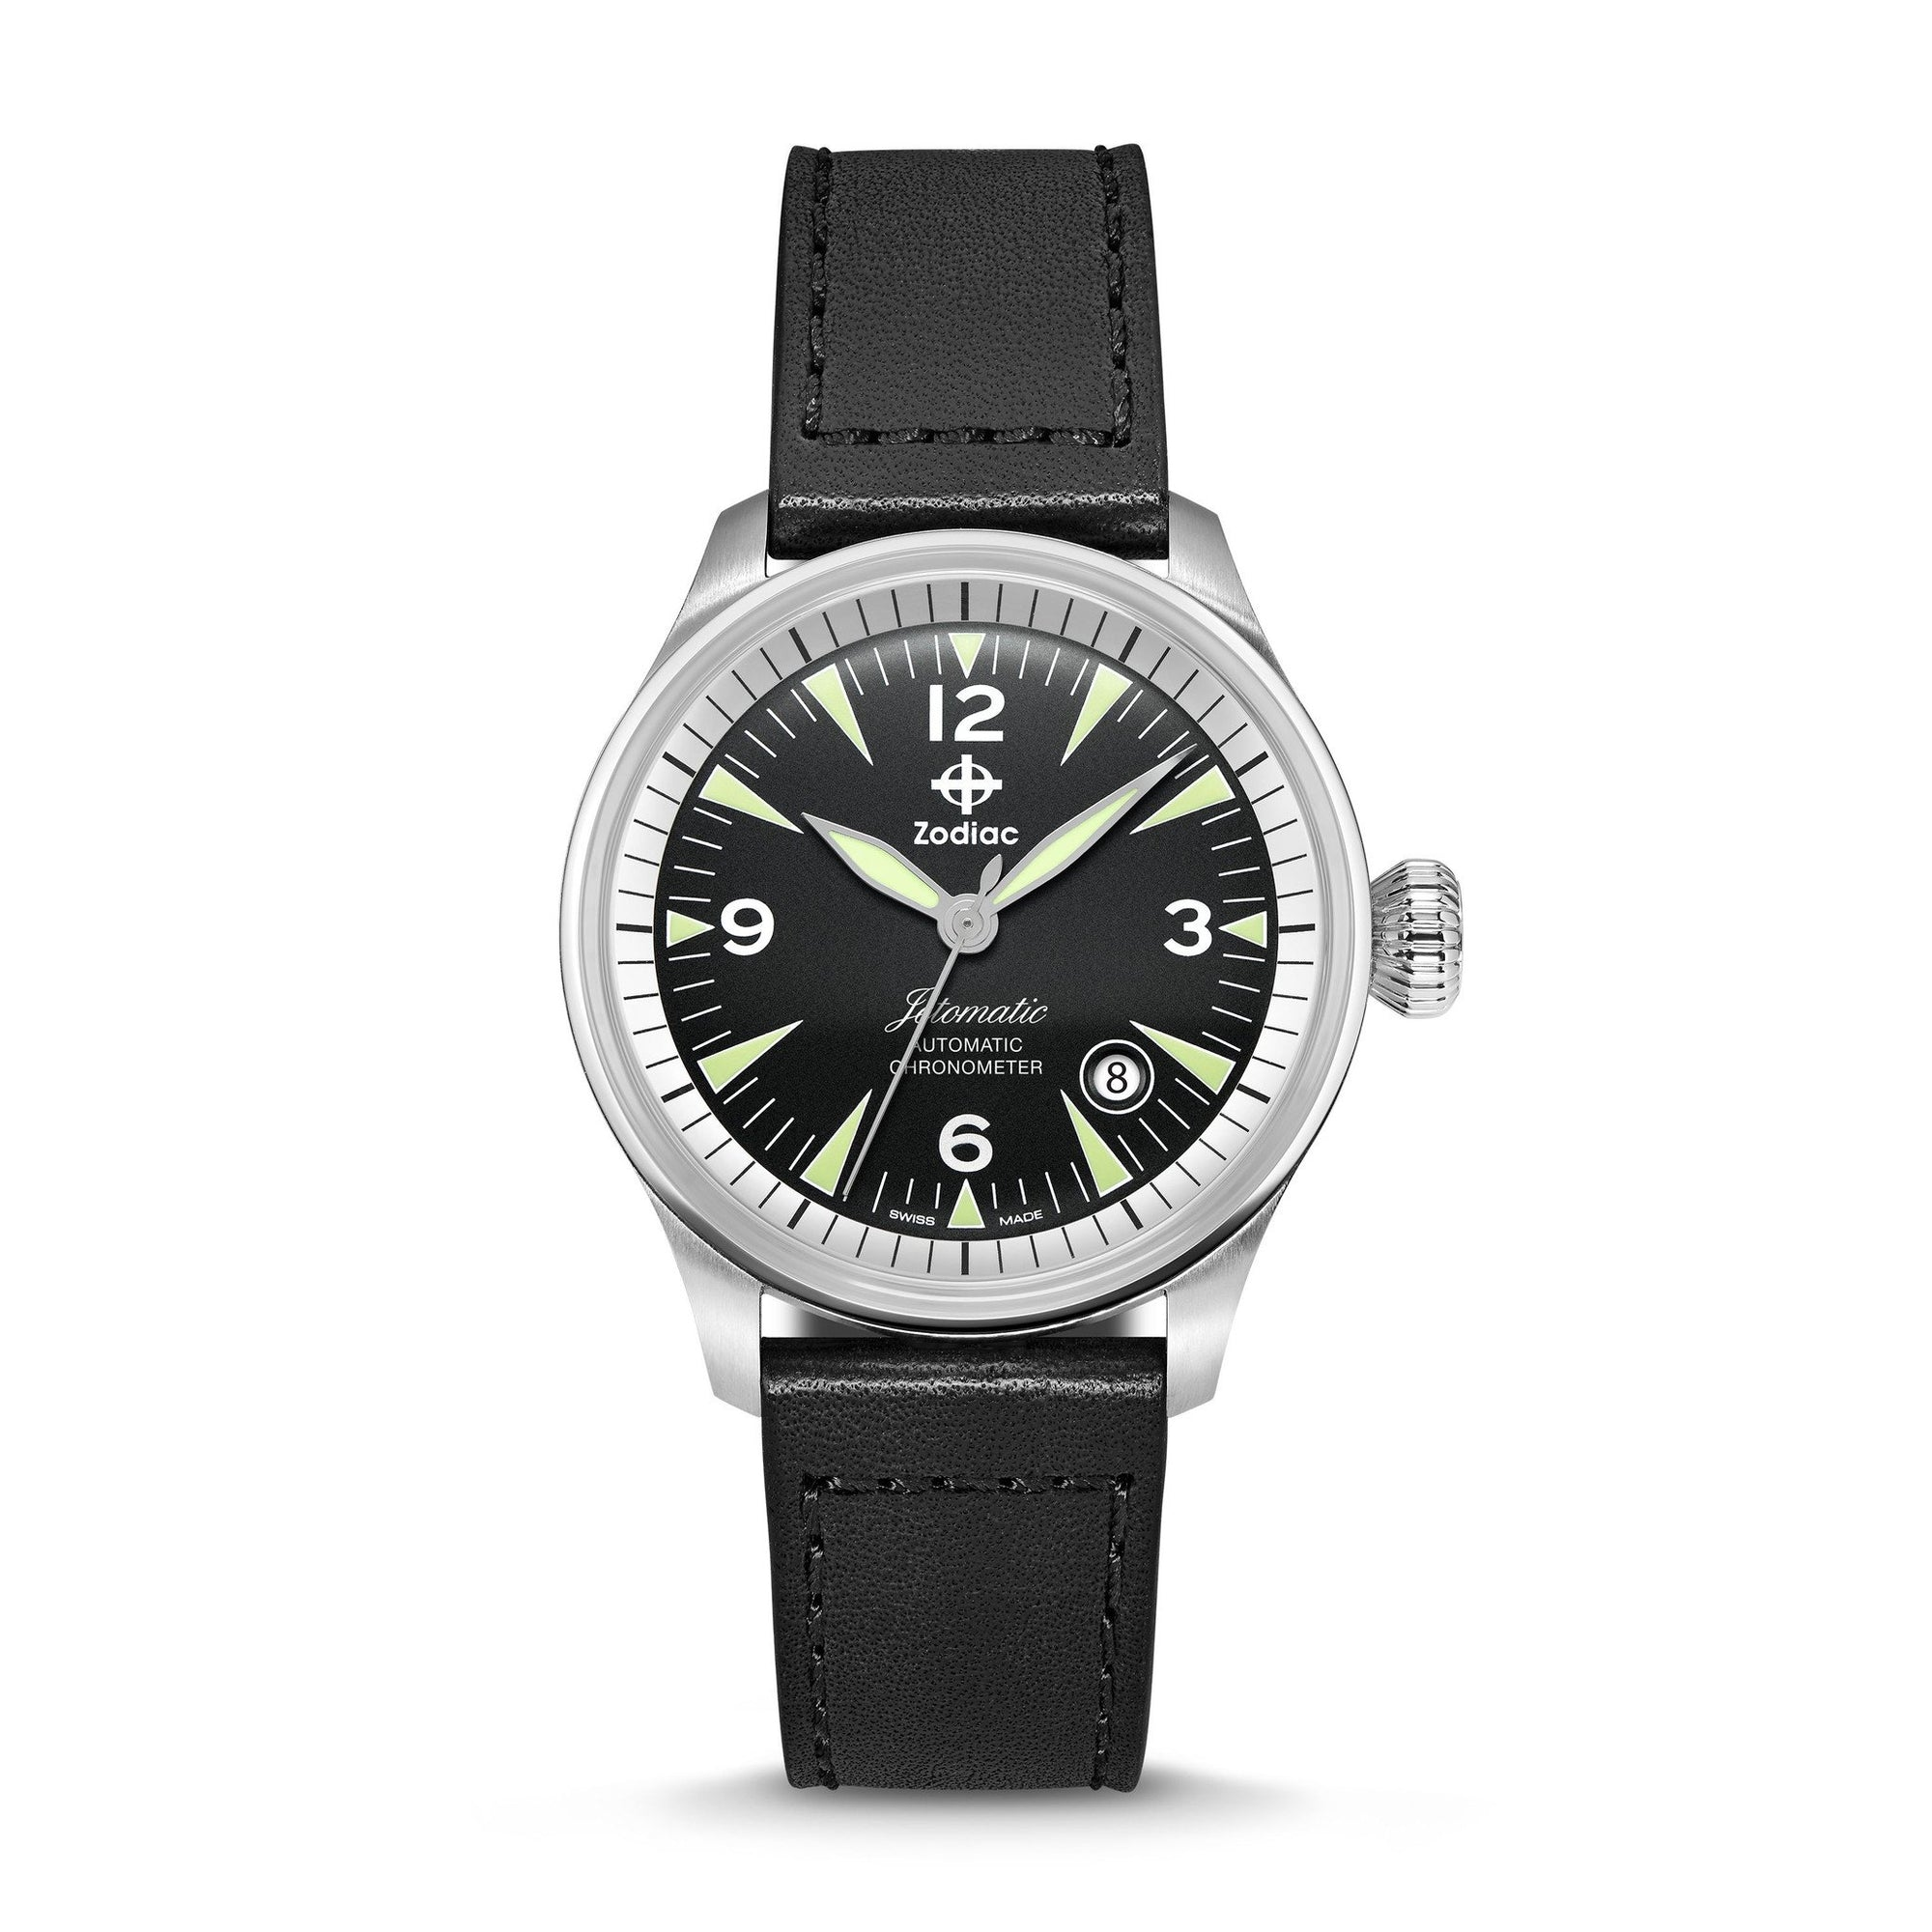 Men 39 s watches dive watches adventure watches timepieces zodiac zodiac watches for Adventure watches